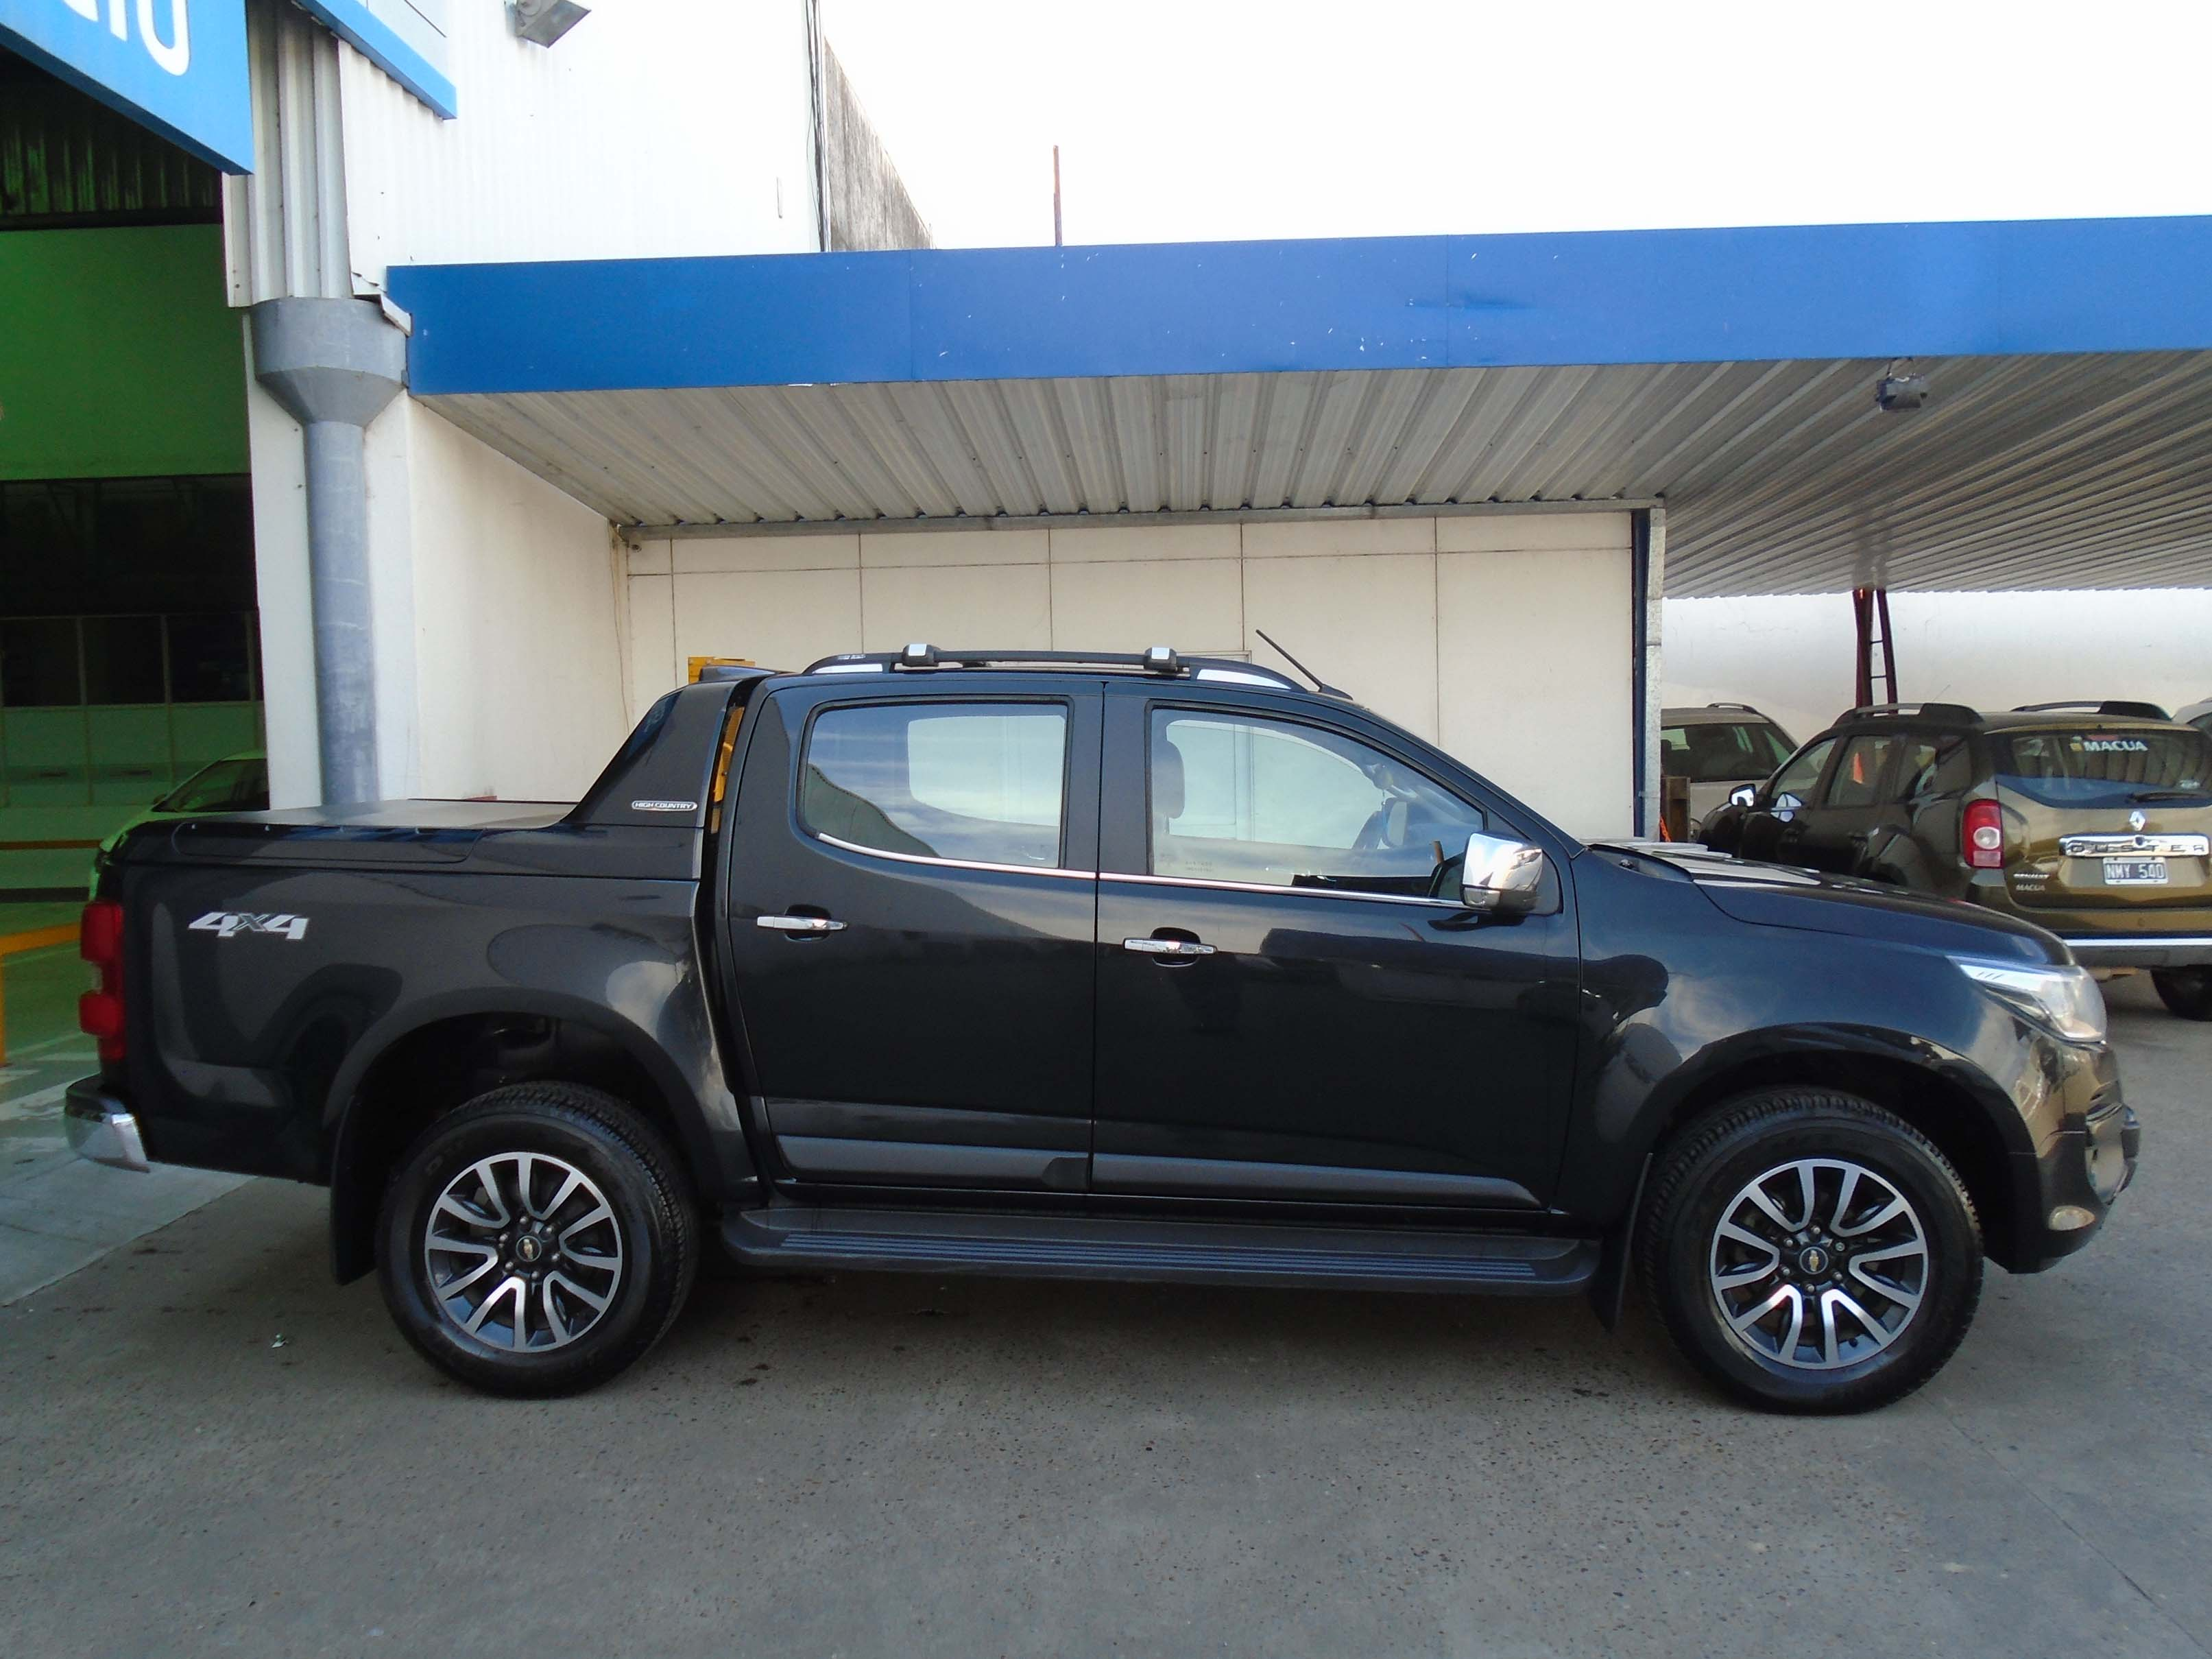 2017 CHEVROLET S10 CD 4X4 HIGH COUNTRY 2,8